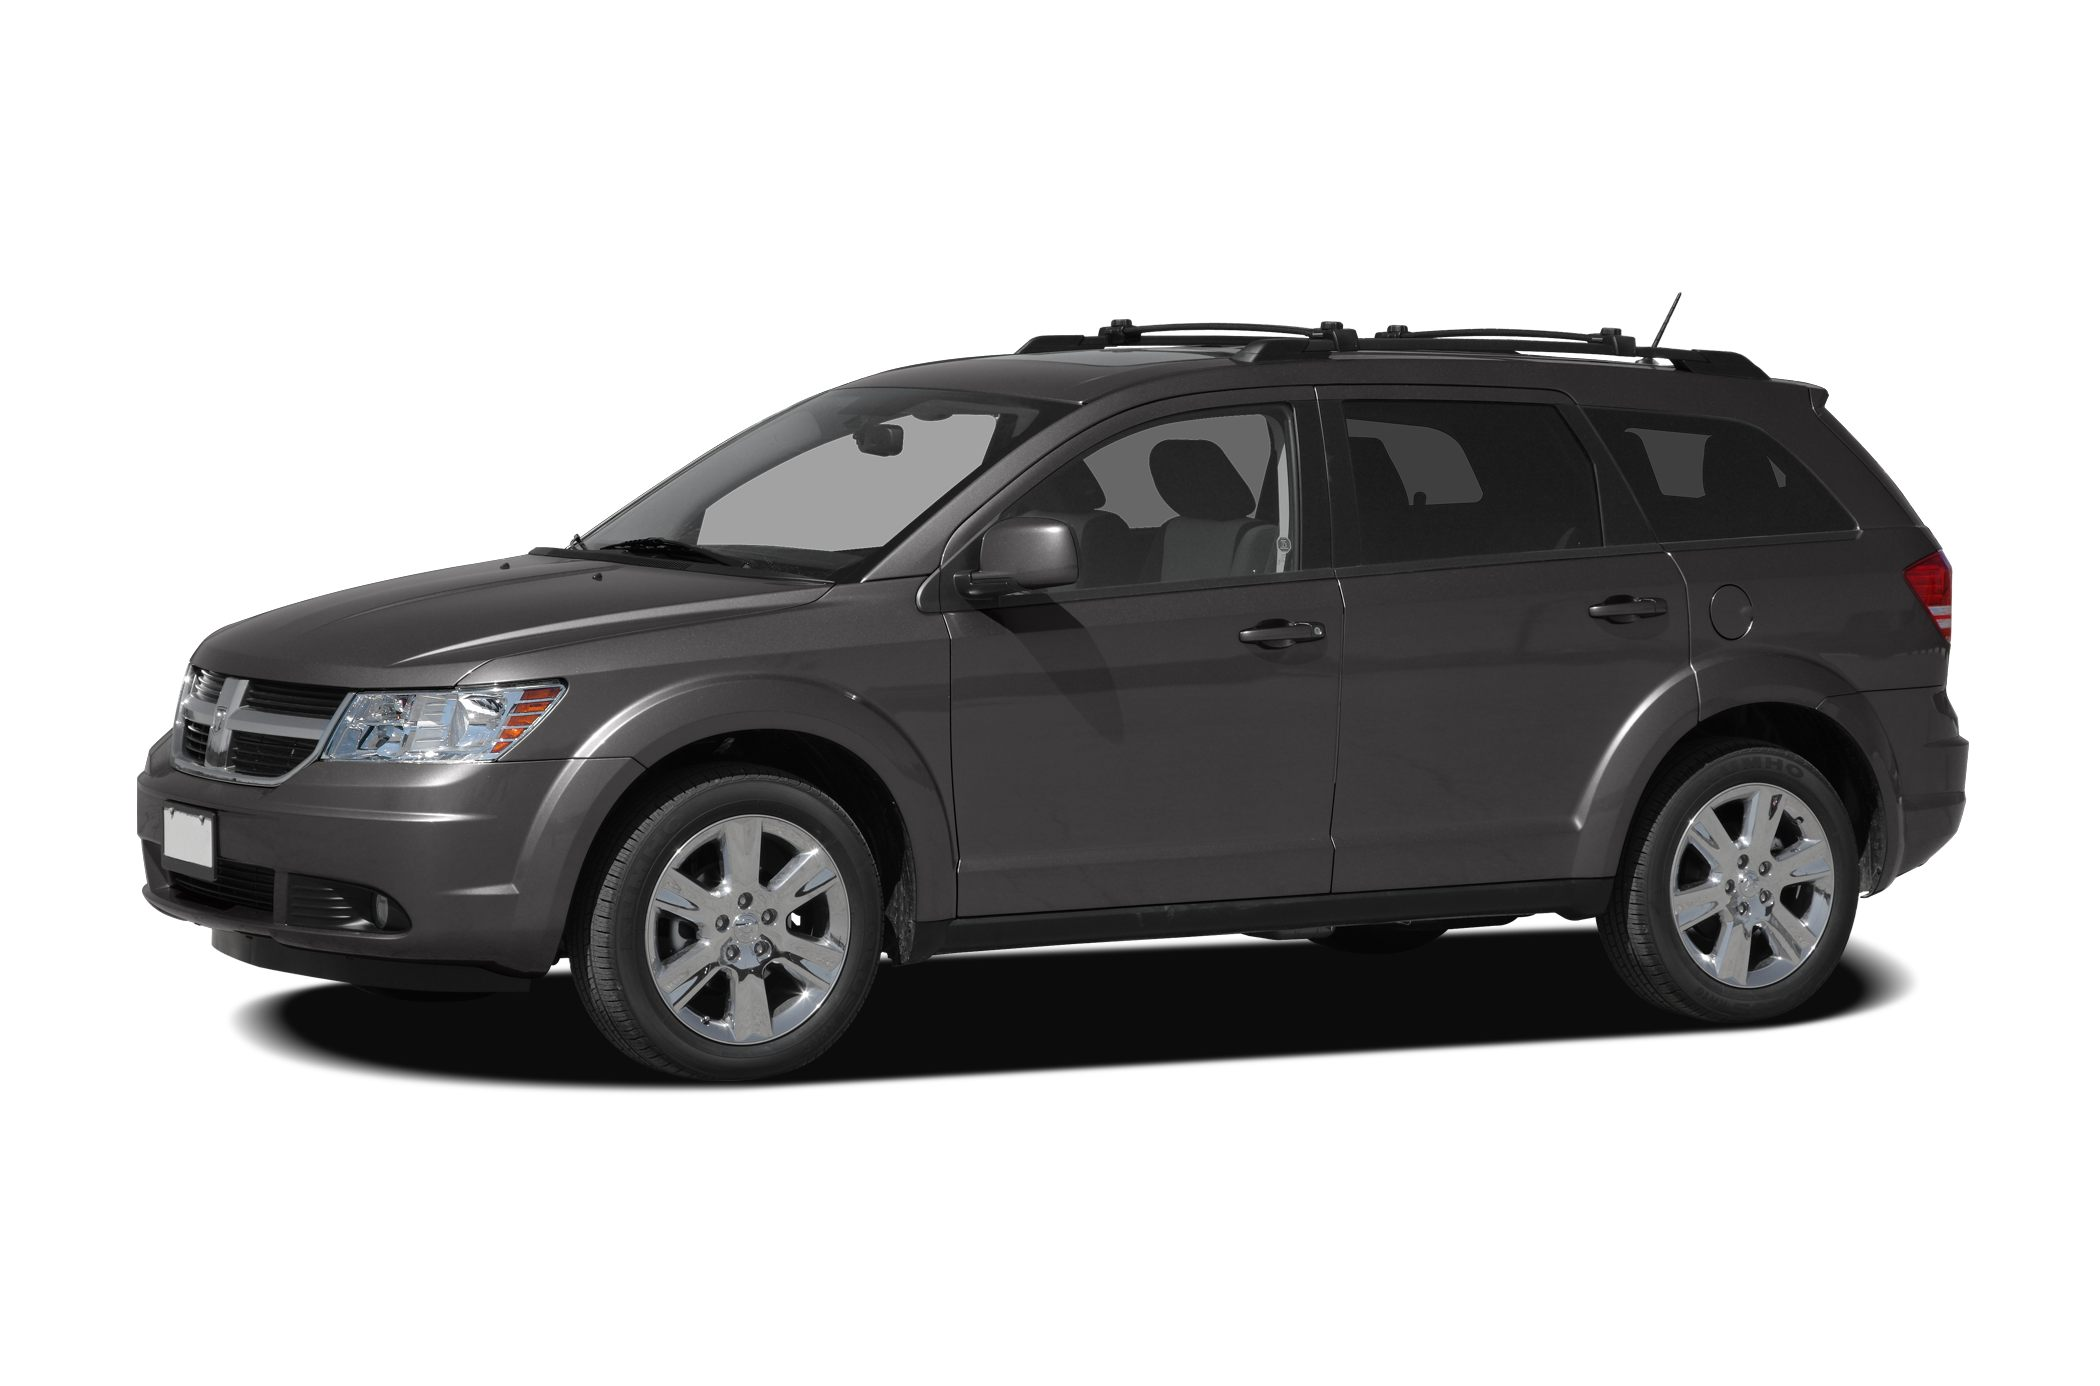 2009 Dodge Journey SE THIS VEHICLE COMES WITH OUR BEST PRICE GUARANTEE FIND A BETTER ON A SIMILA